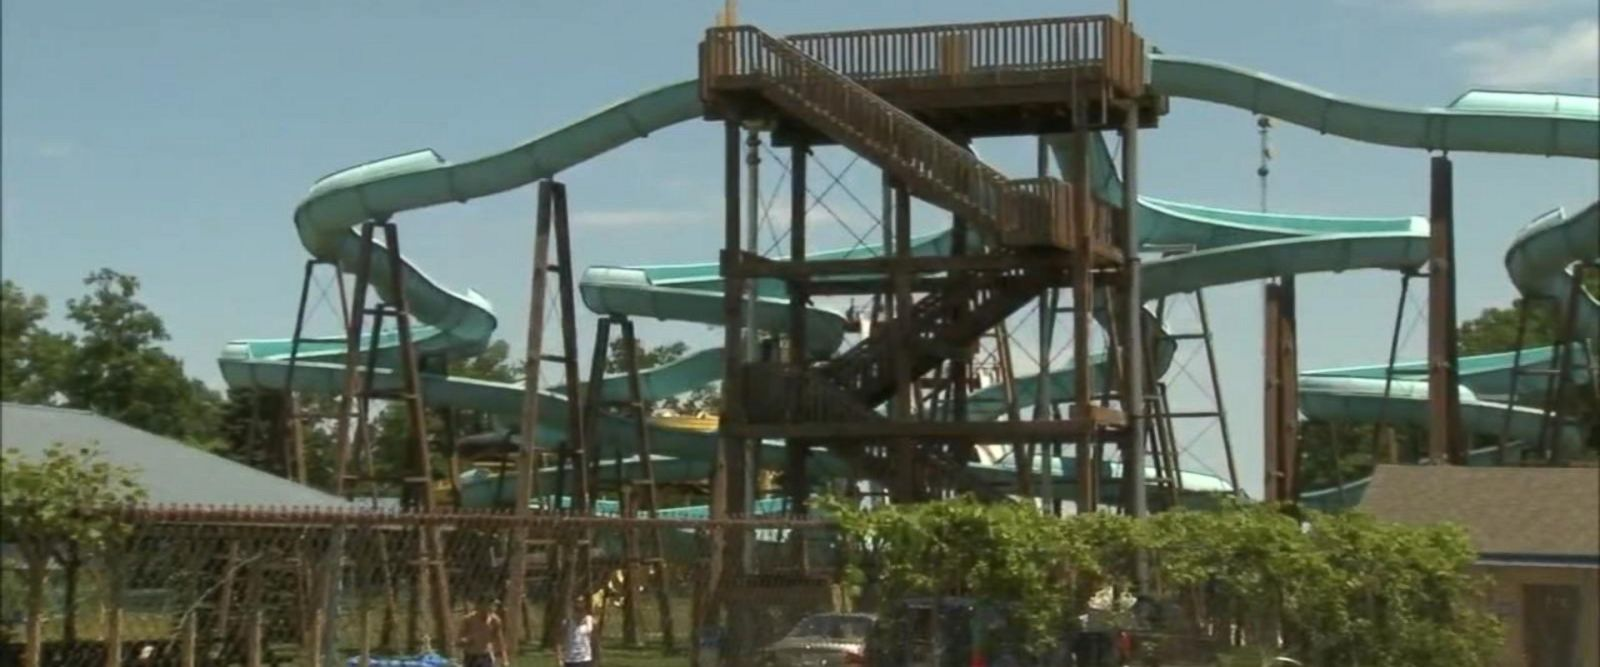 VIDEO: 5 children sickened by 'cloud of chlorine gas' at pool